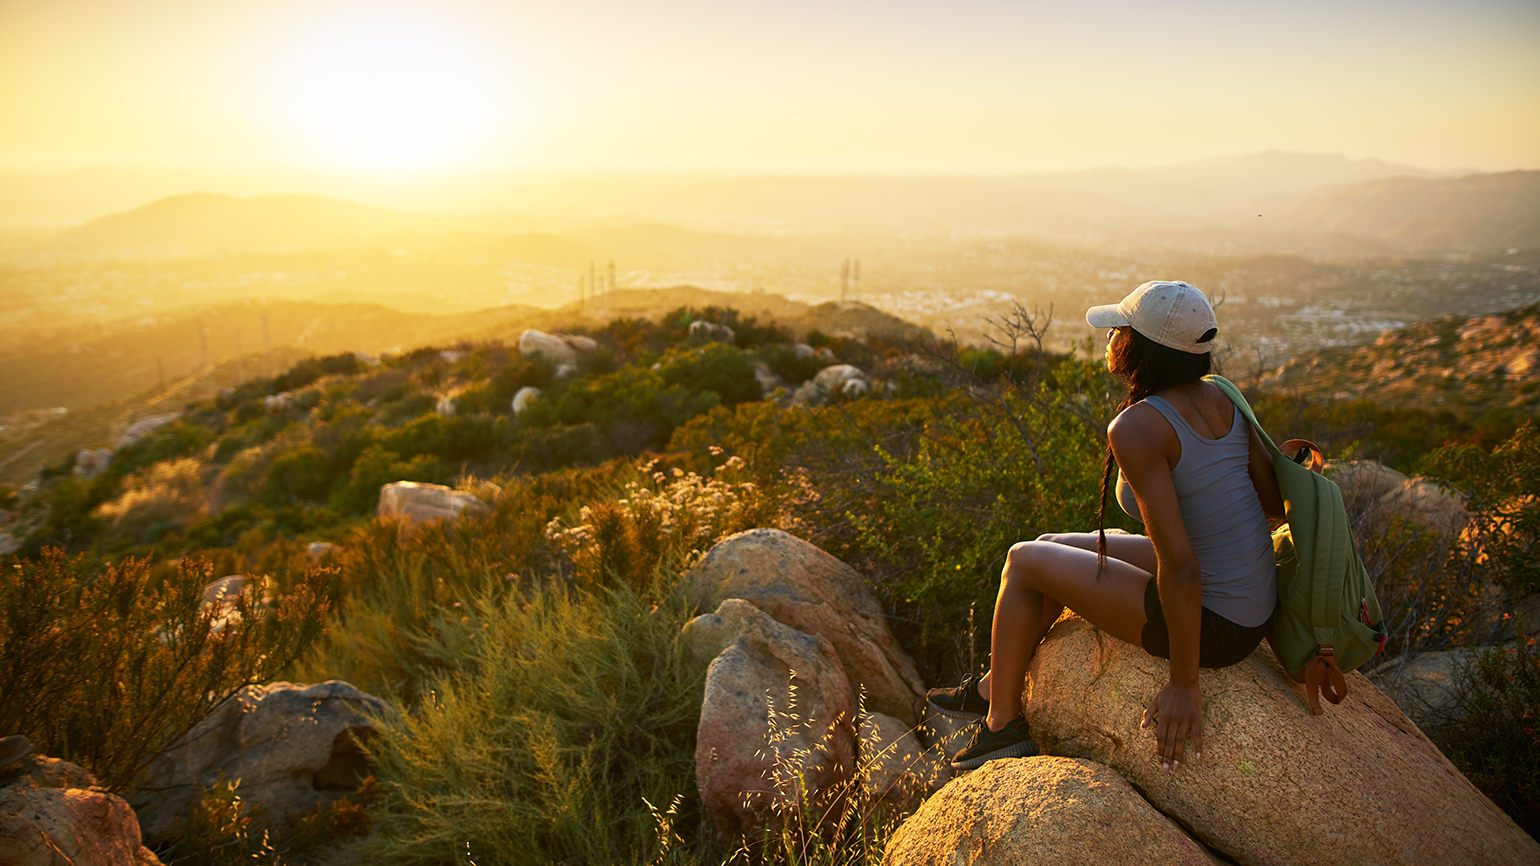 A woman greets the sunrise from a hilltop